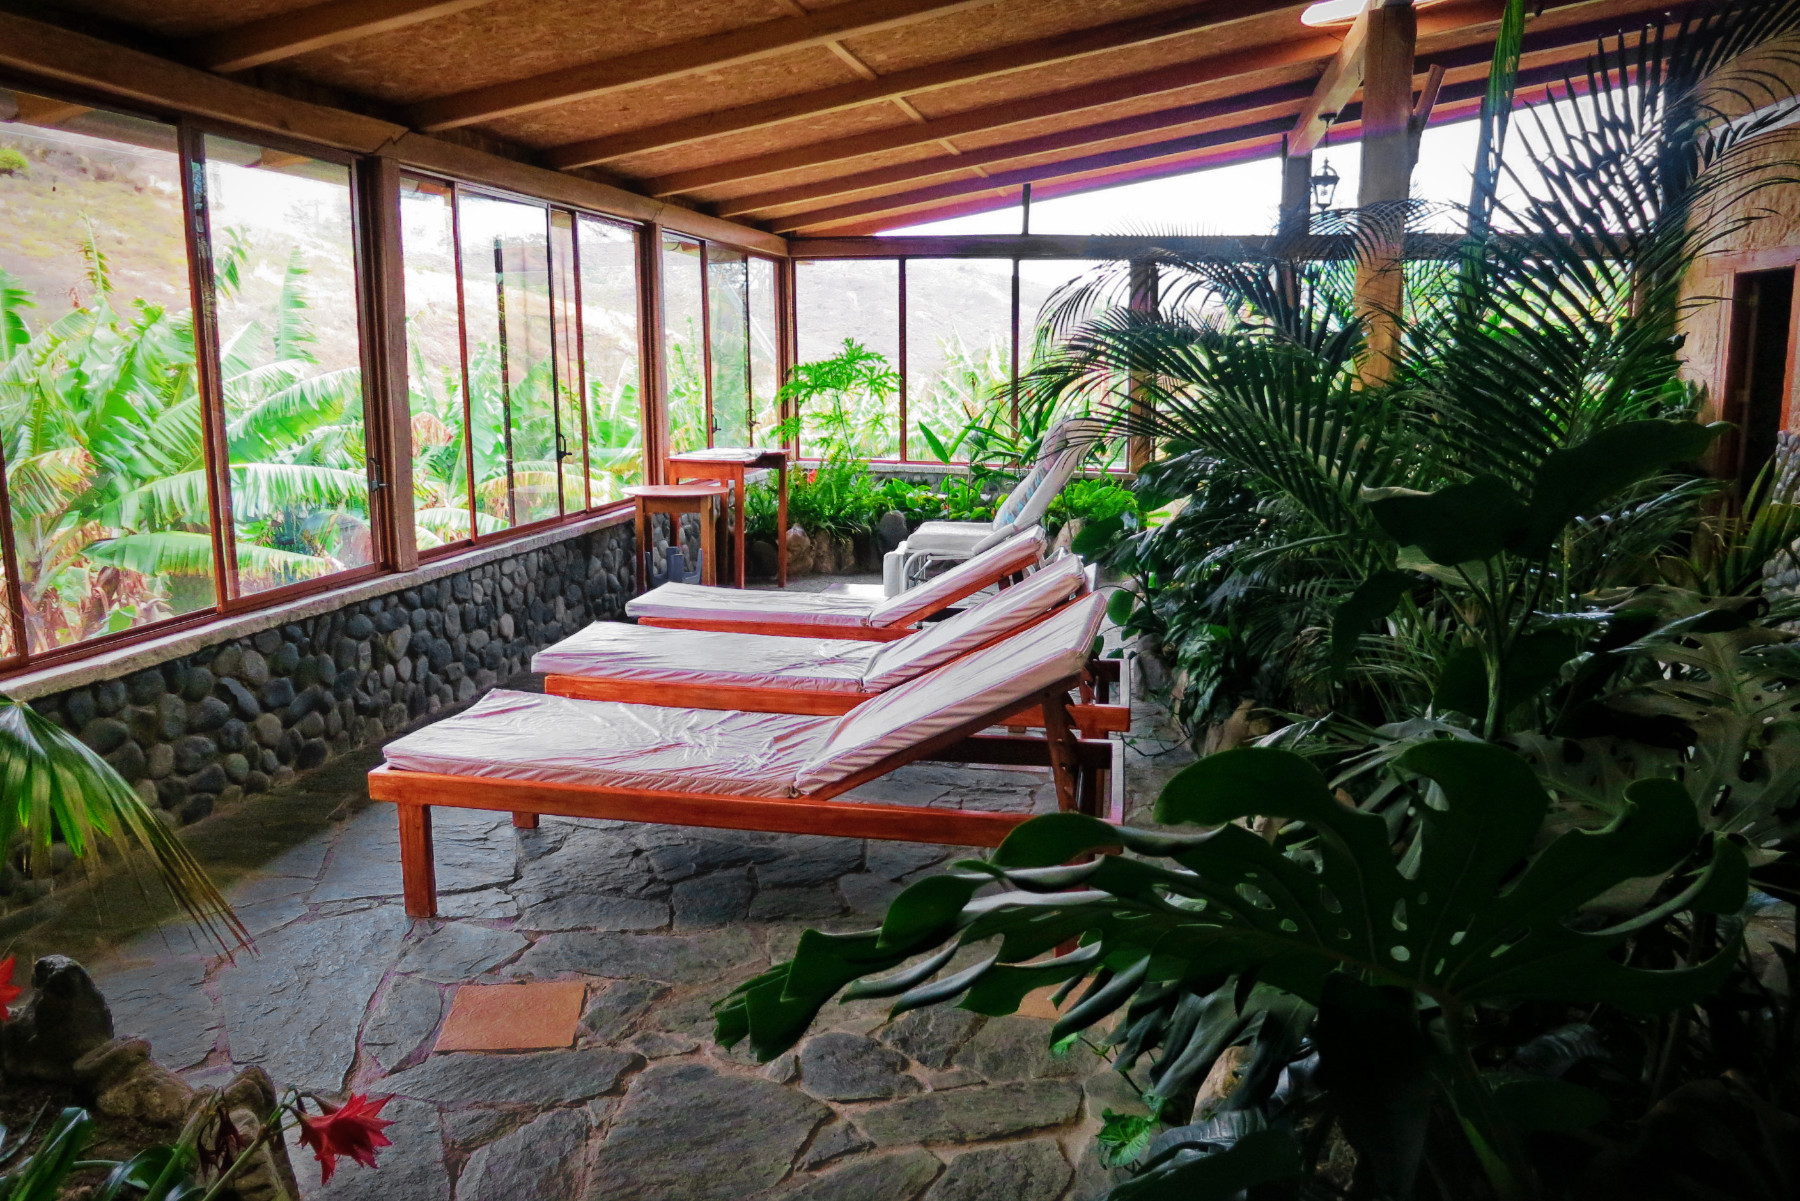 The eco-resort and hostel at Hostel Izcayluma in Vilcabamba, Ecuador features affordable and relaxing beauty and spa services.